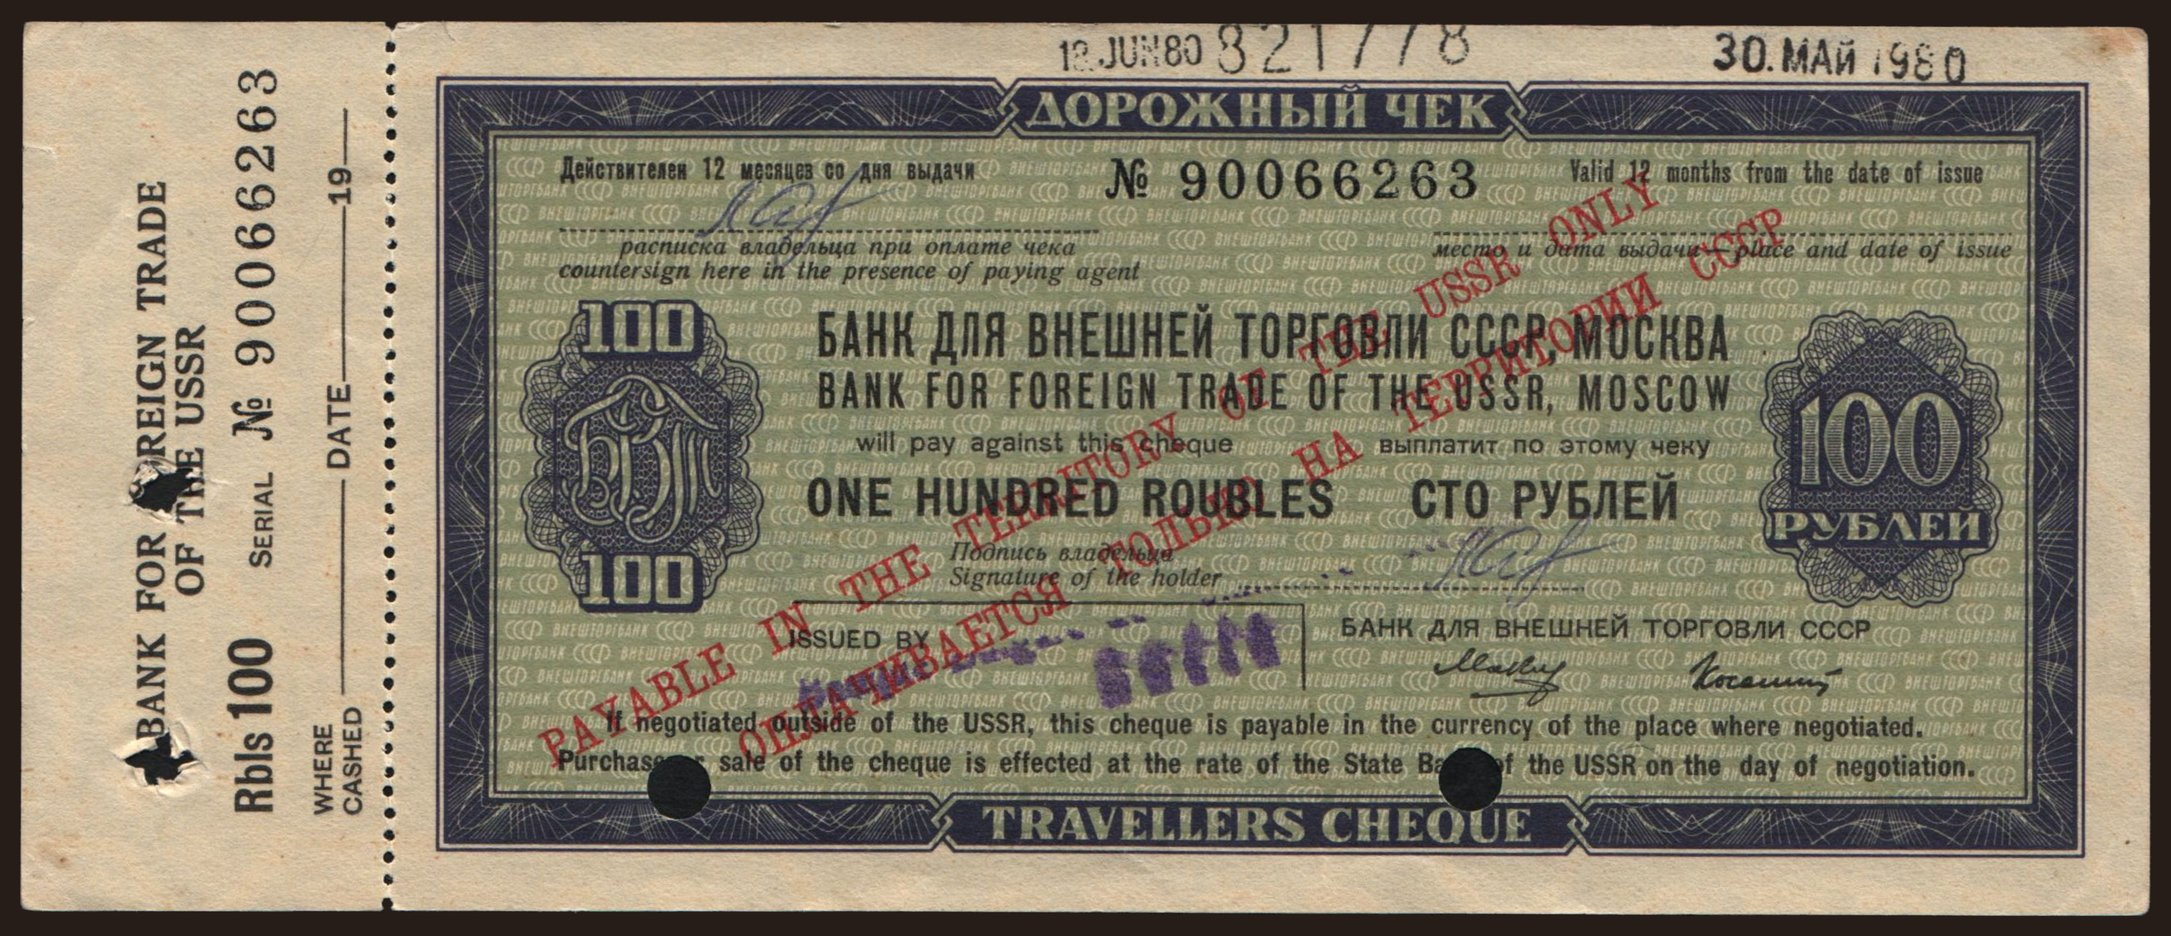 Travellers cheque, Bank for Foreign Trade, 100 rubel, 1970